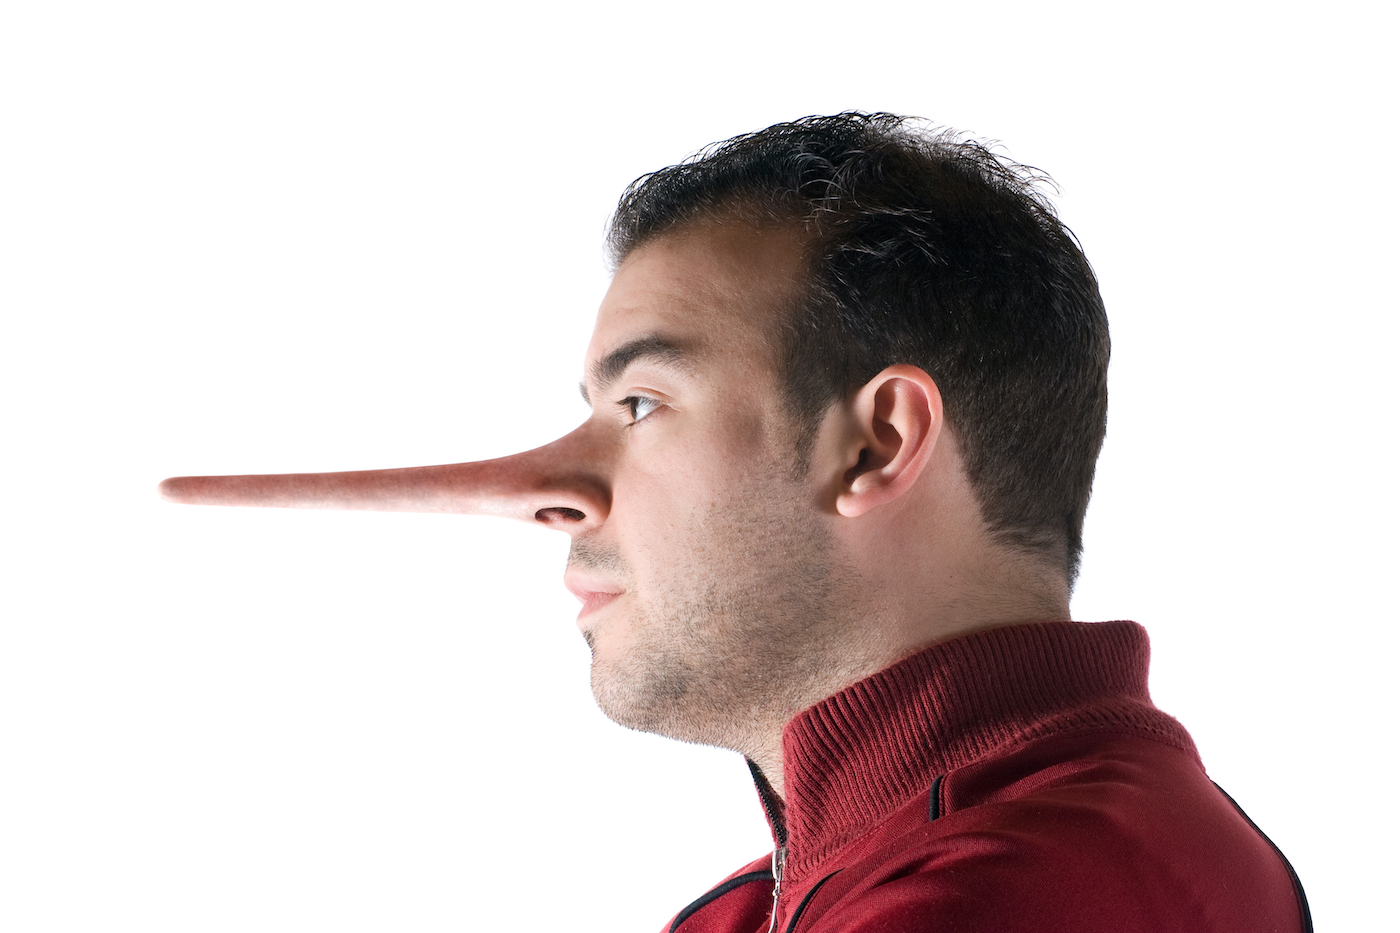 a-dishonest-man-has-a-nose-that-grew-long-when-he-lied-just-like-in-the-story-of-pinocchio_HYi-l7_RHi.jpg